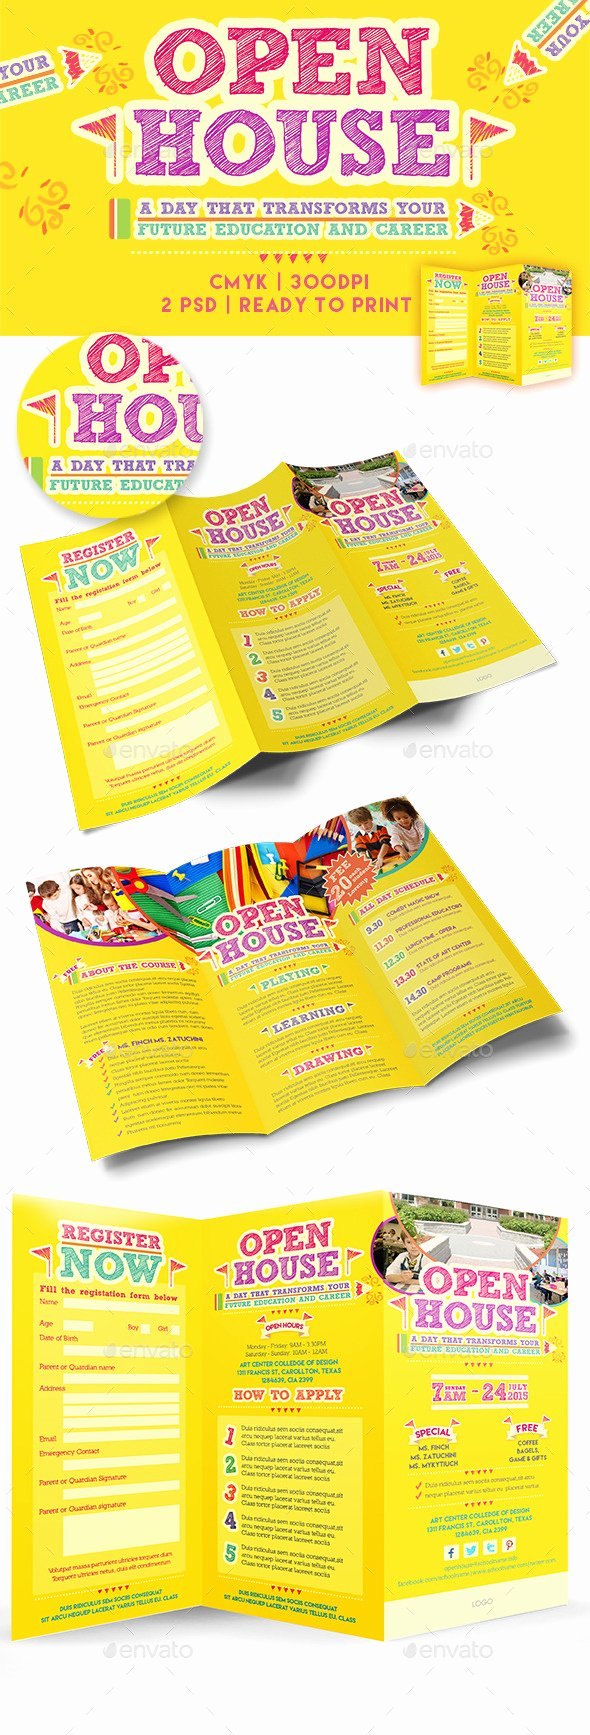 Open House Brochure Template Luxury Open House Trifold Brochure Template by Emty